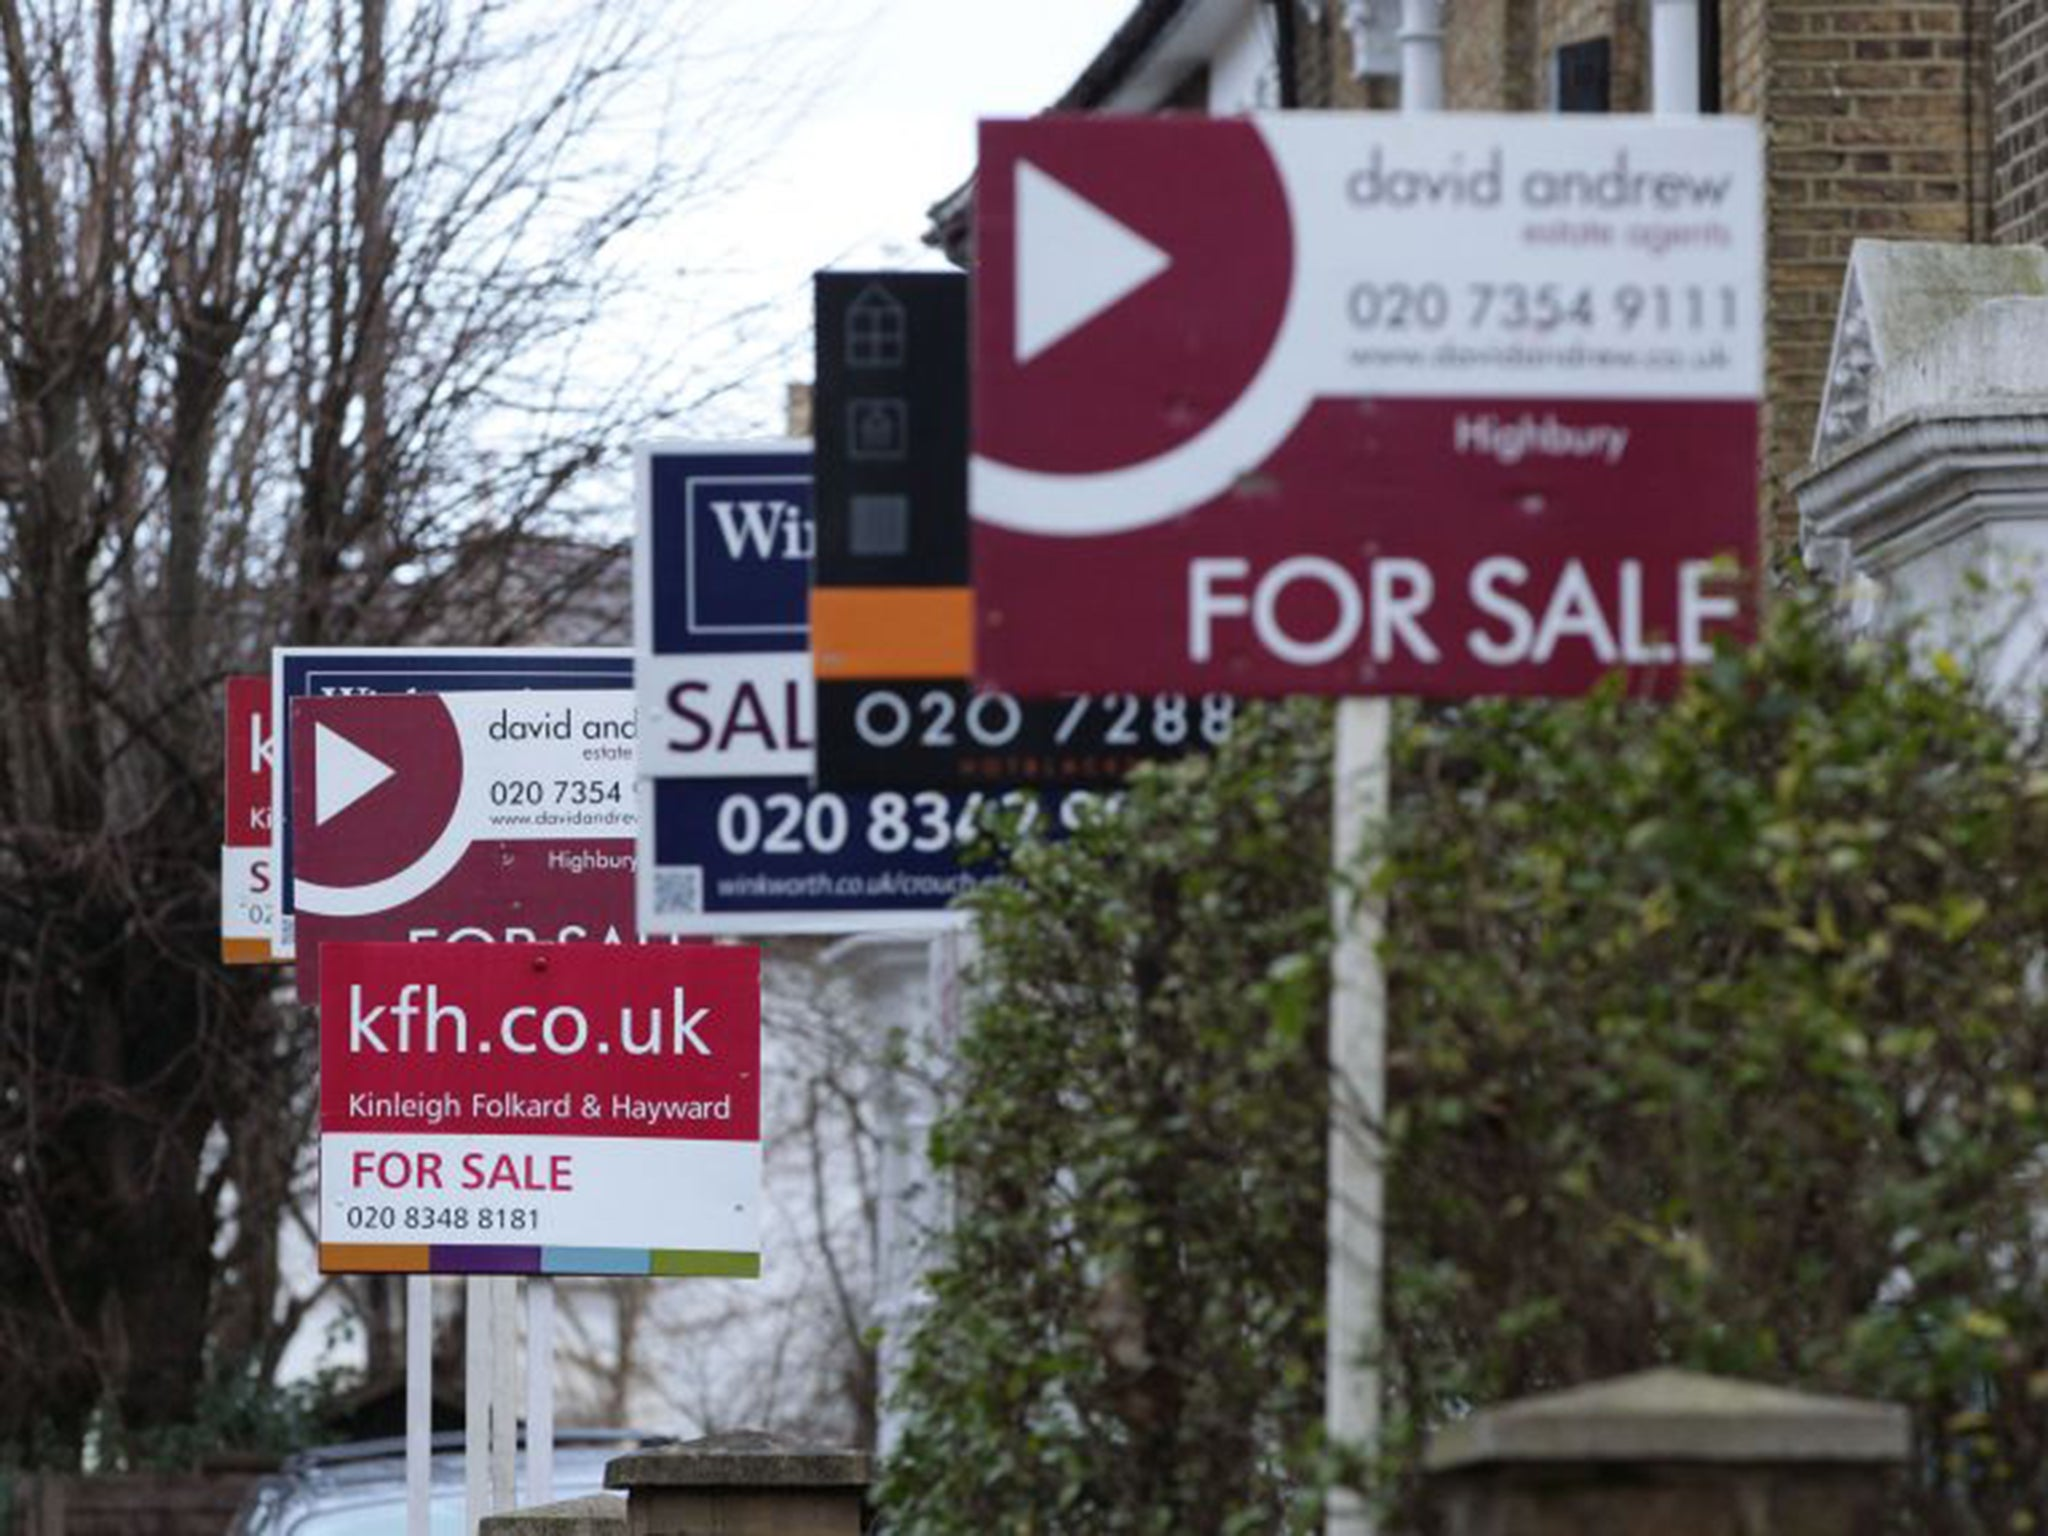 Baby boomers buying up properties and renting to young people who then cannot afford to buy homes